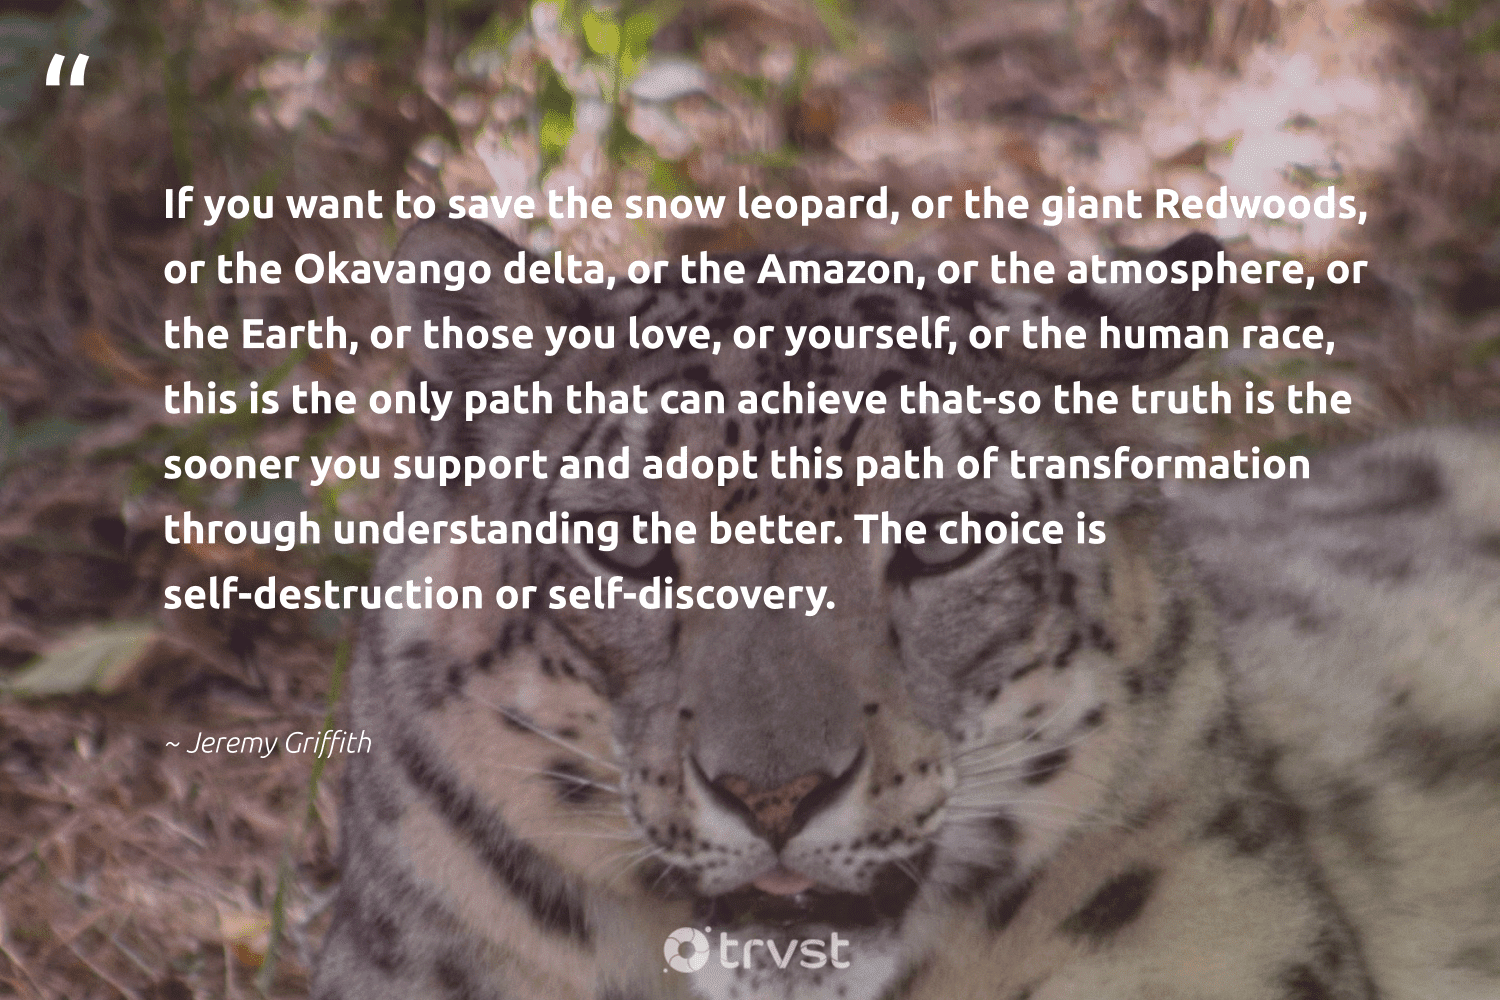 """""""If you want to save the snow leopard, or the giant Redwoods, or the Okavango delta, or the Amazon, or the atmosphere, or the Earth, or those you love, or yourself, or the human race, this is the only path that can achieve that-so the truth is the sooner you support and adopt this path of transformation through understanding the better. The choice is self-destruction or self-discovery.""""  - Jeremy Griffith #trvst #quotes #love #earth #snow #truth #leopard #environment #nature #gogreen #bethechange #conservation"""